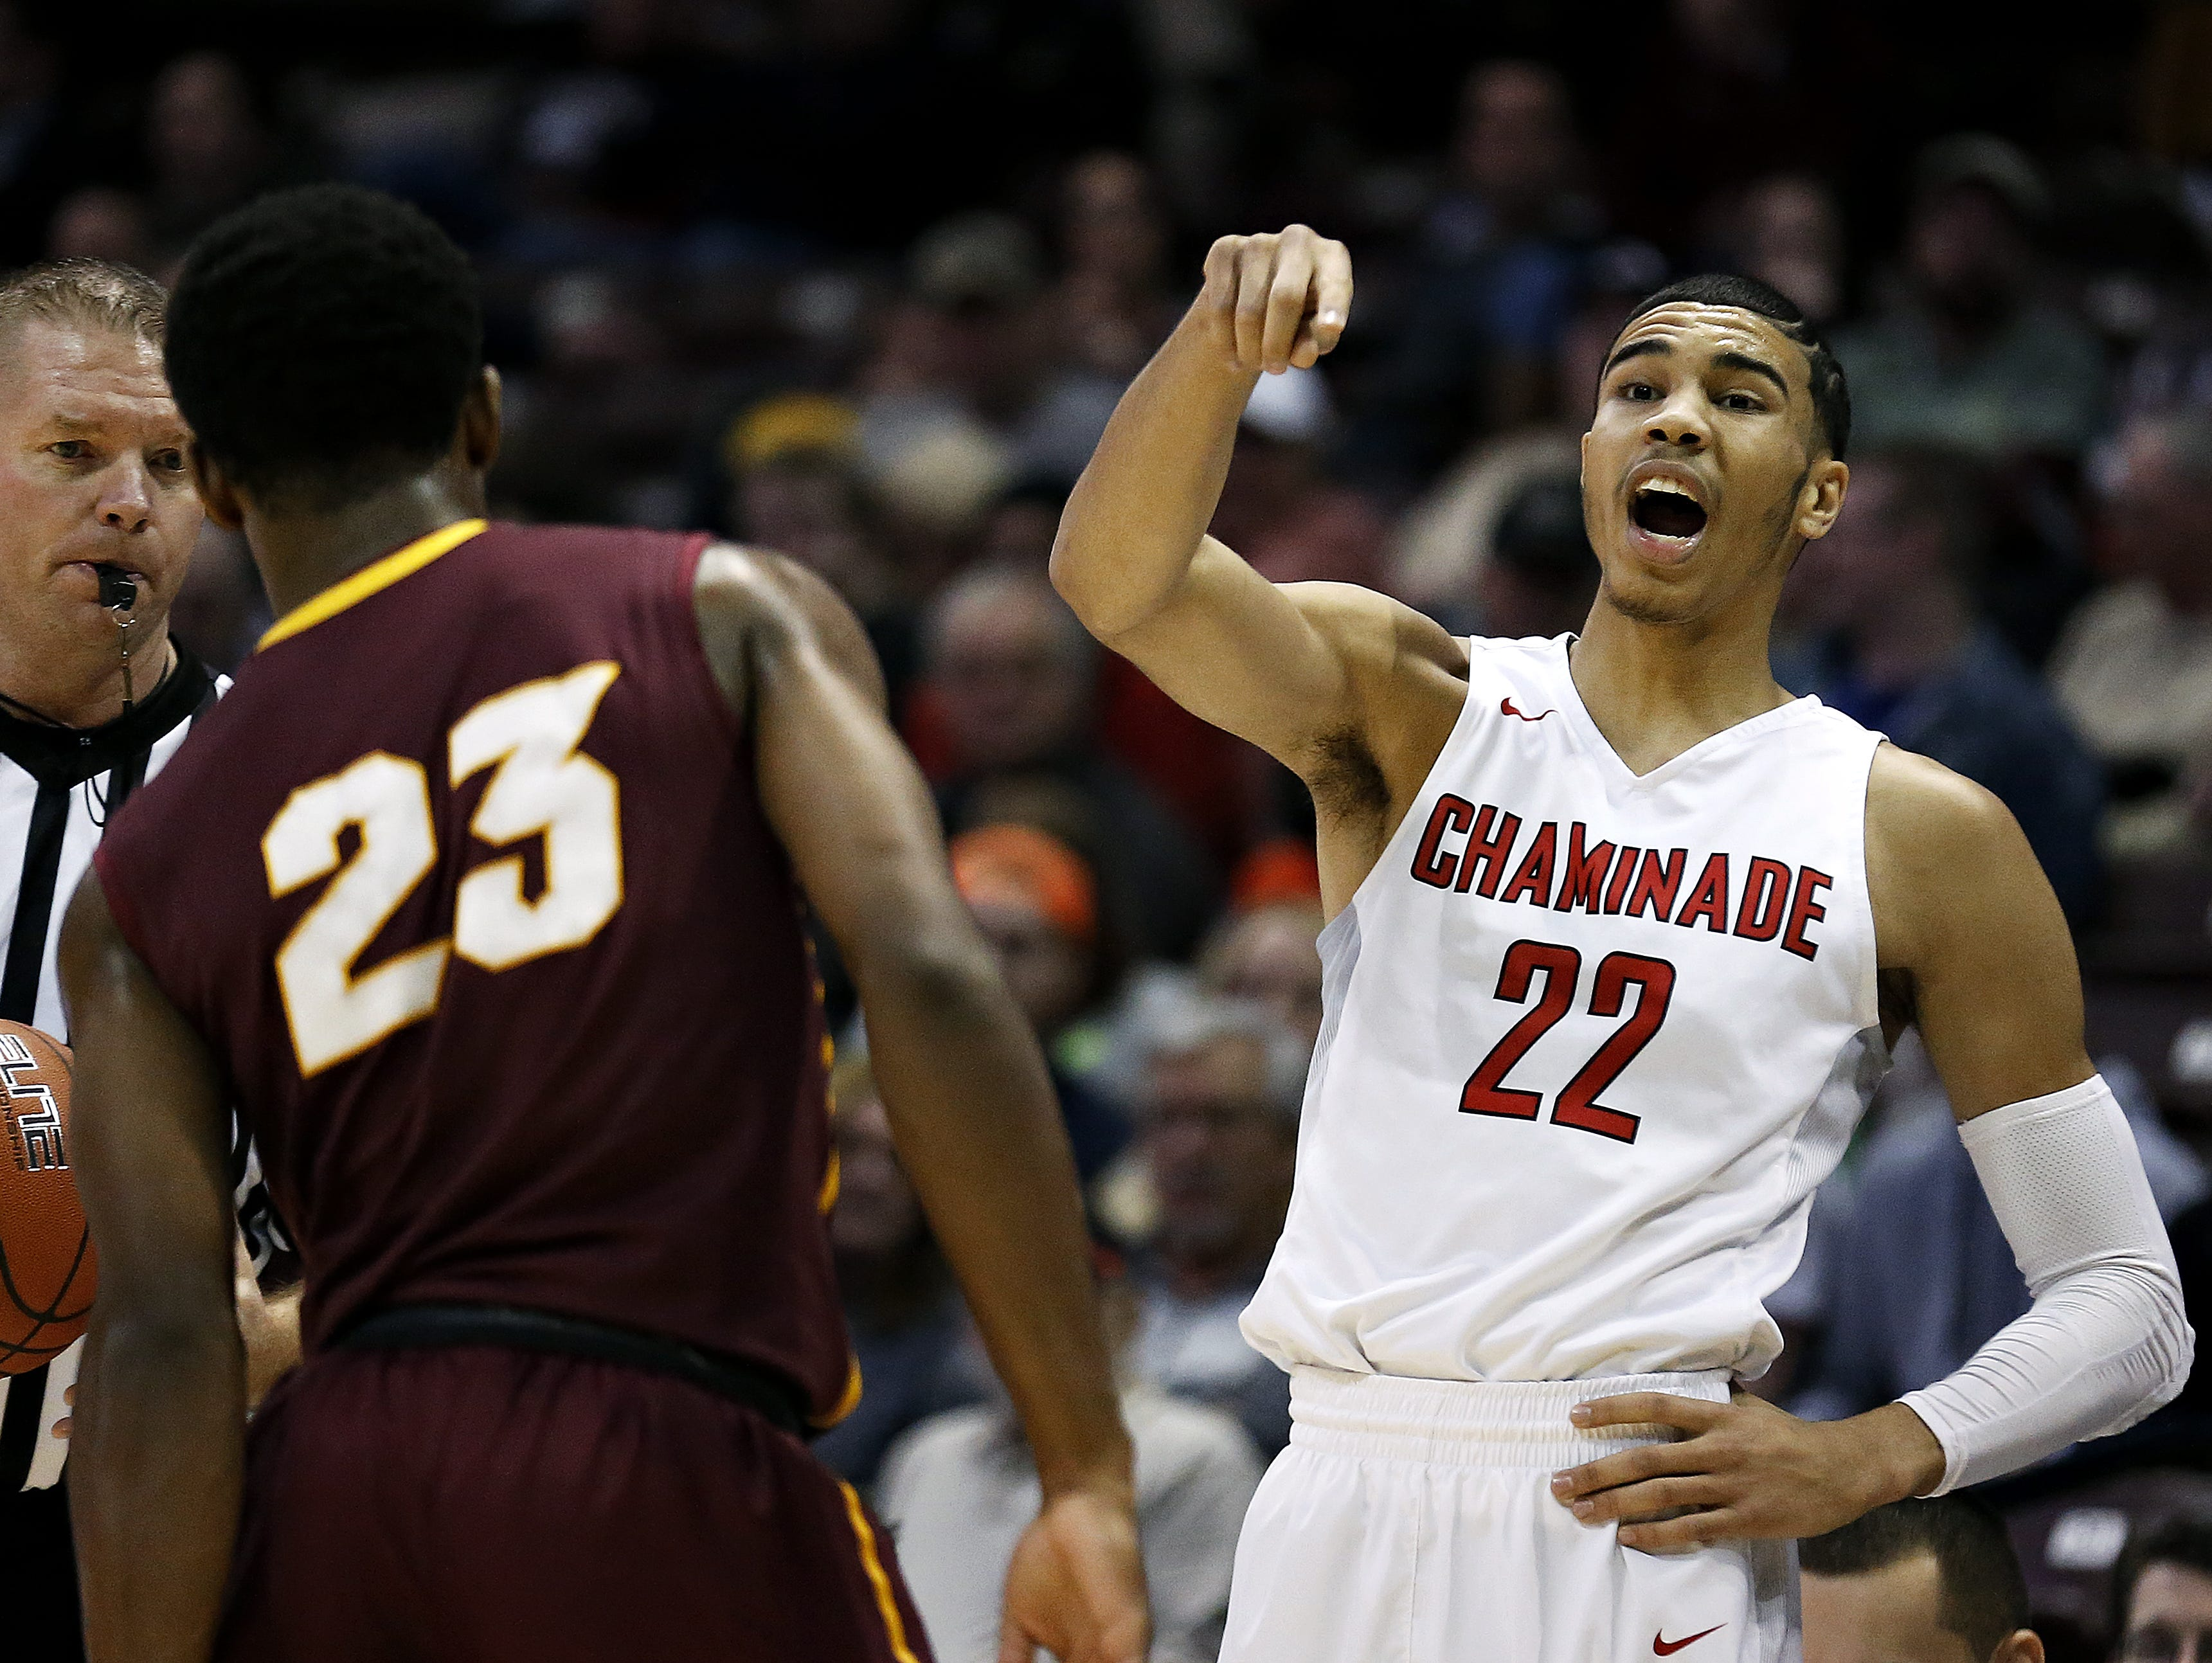 Chaminade College Preparatory School forward Jayson Tatum (22) yells out instructions to his teammates during first-quarter action of a 2016 Tournament of Champions game against Christ The King High School at JQH Arena. The Red Devils won the game 67-48.